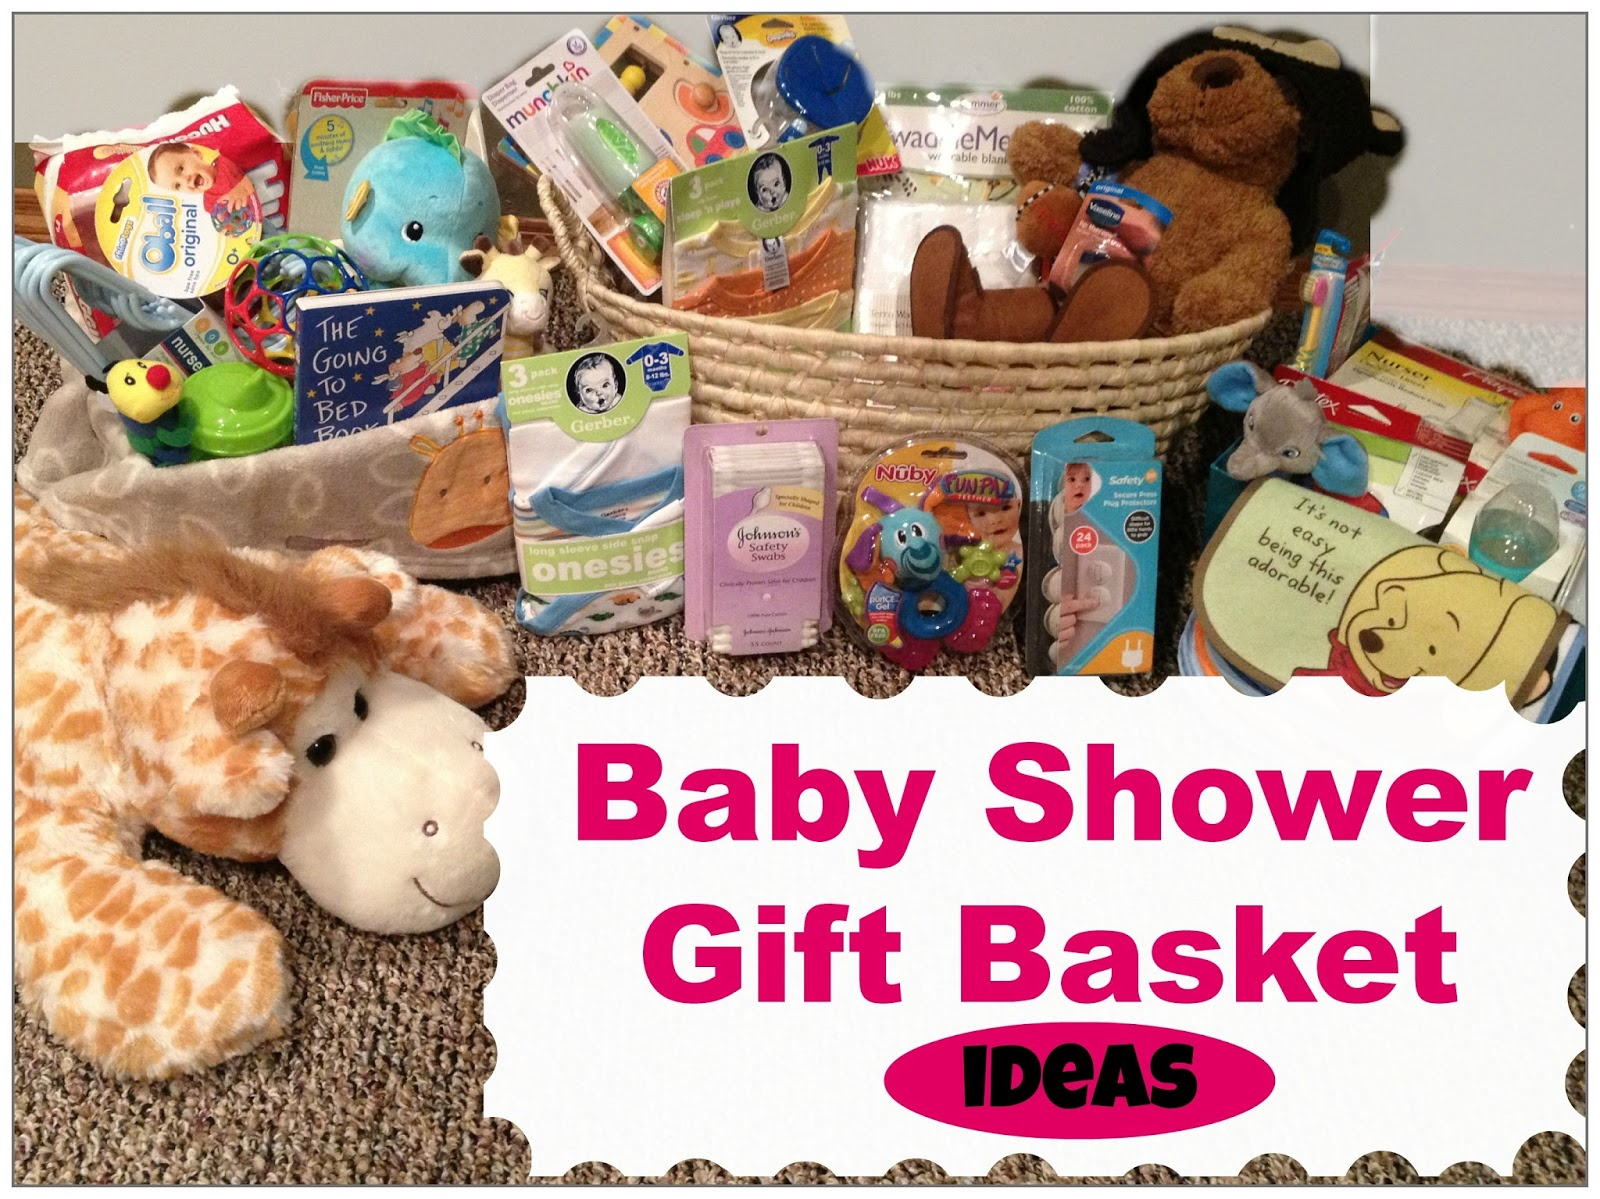 Mommy mia monologues baby shower gift basket ideas baby shower gift basket ideas negle